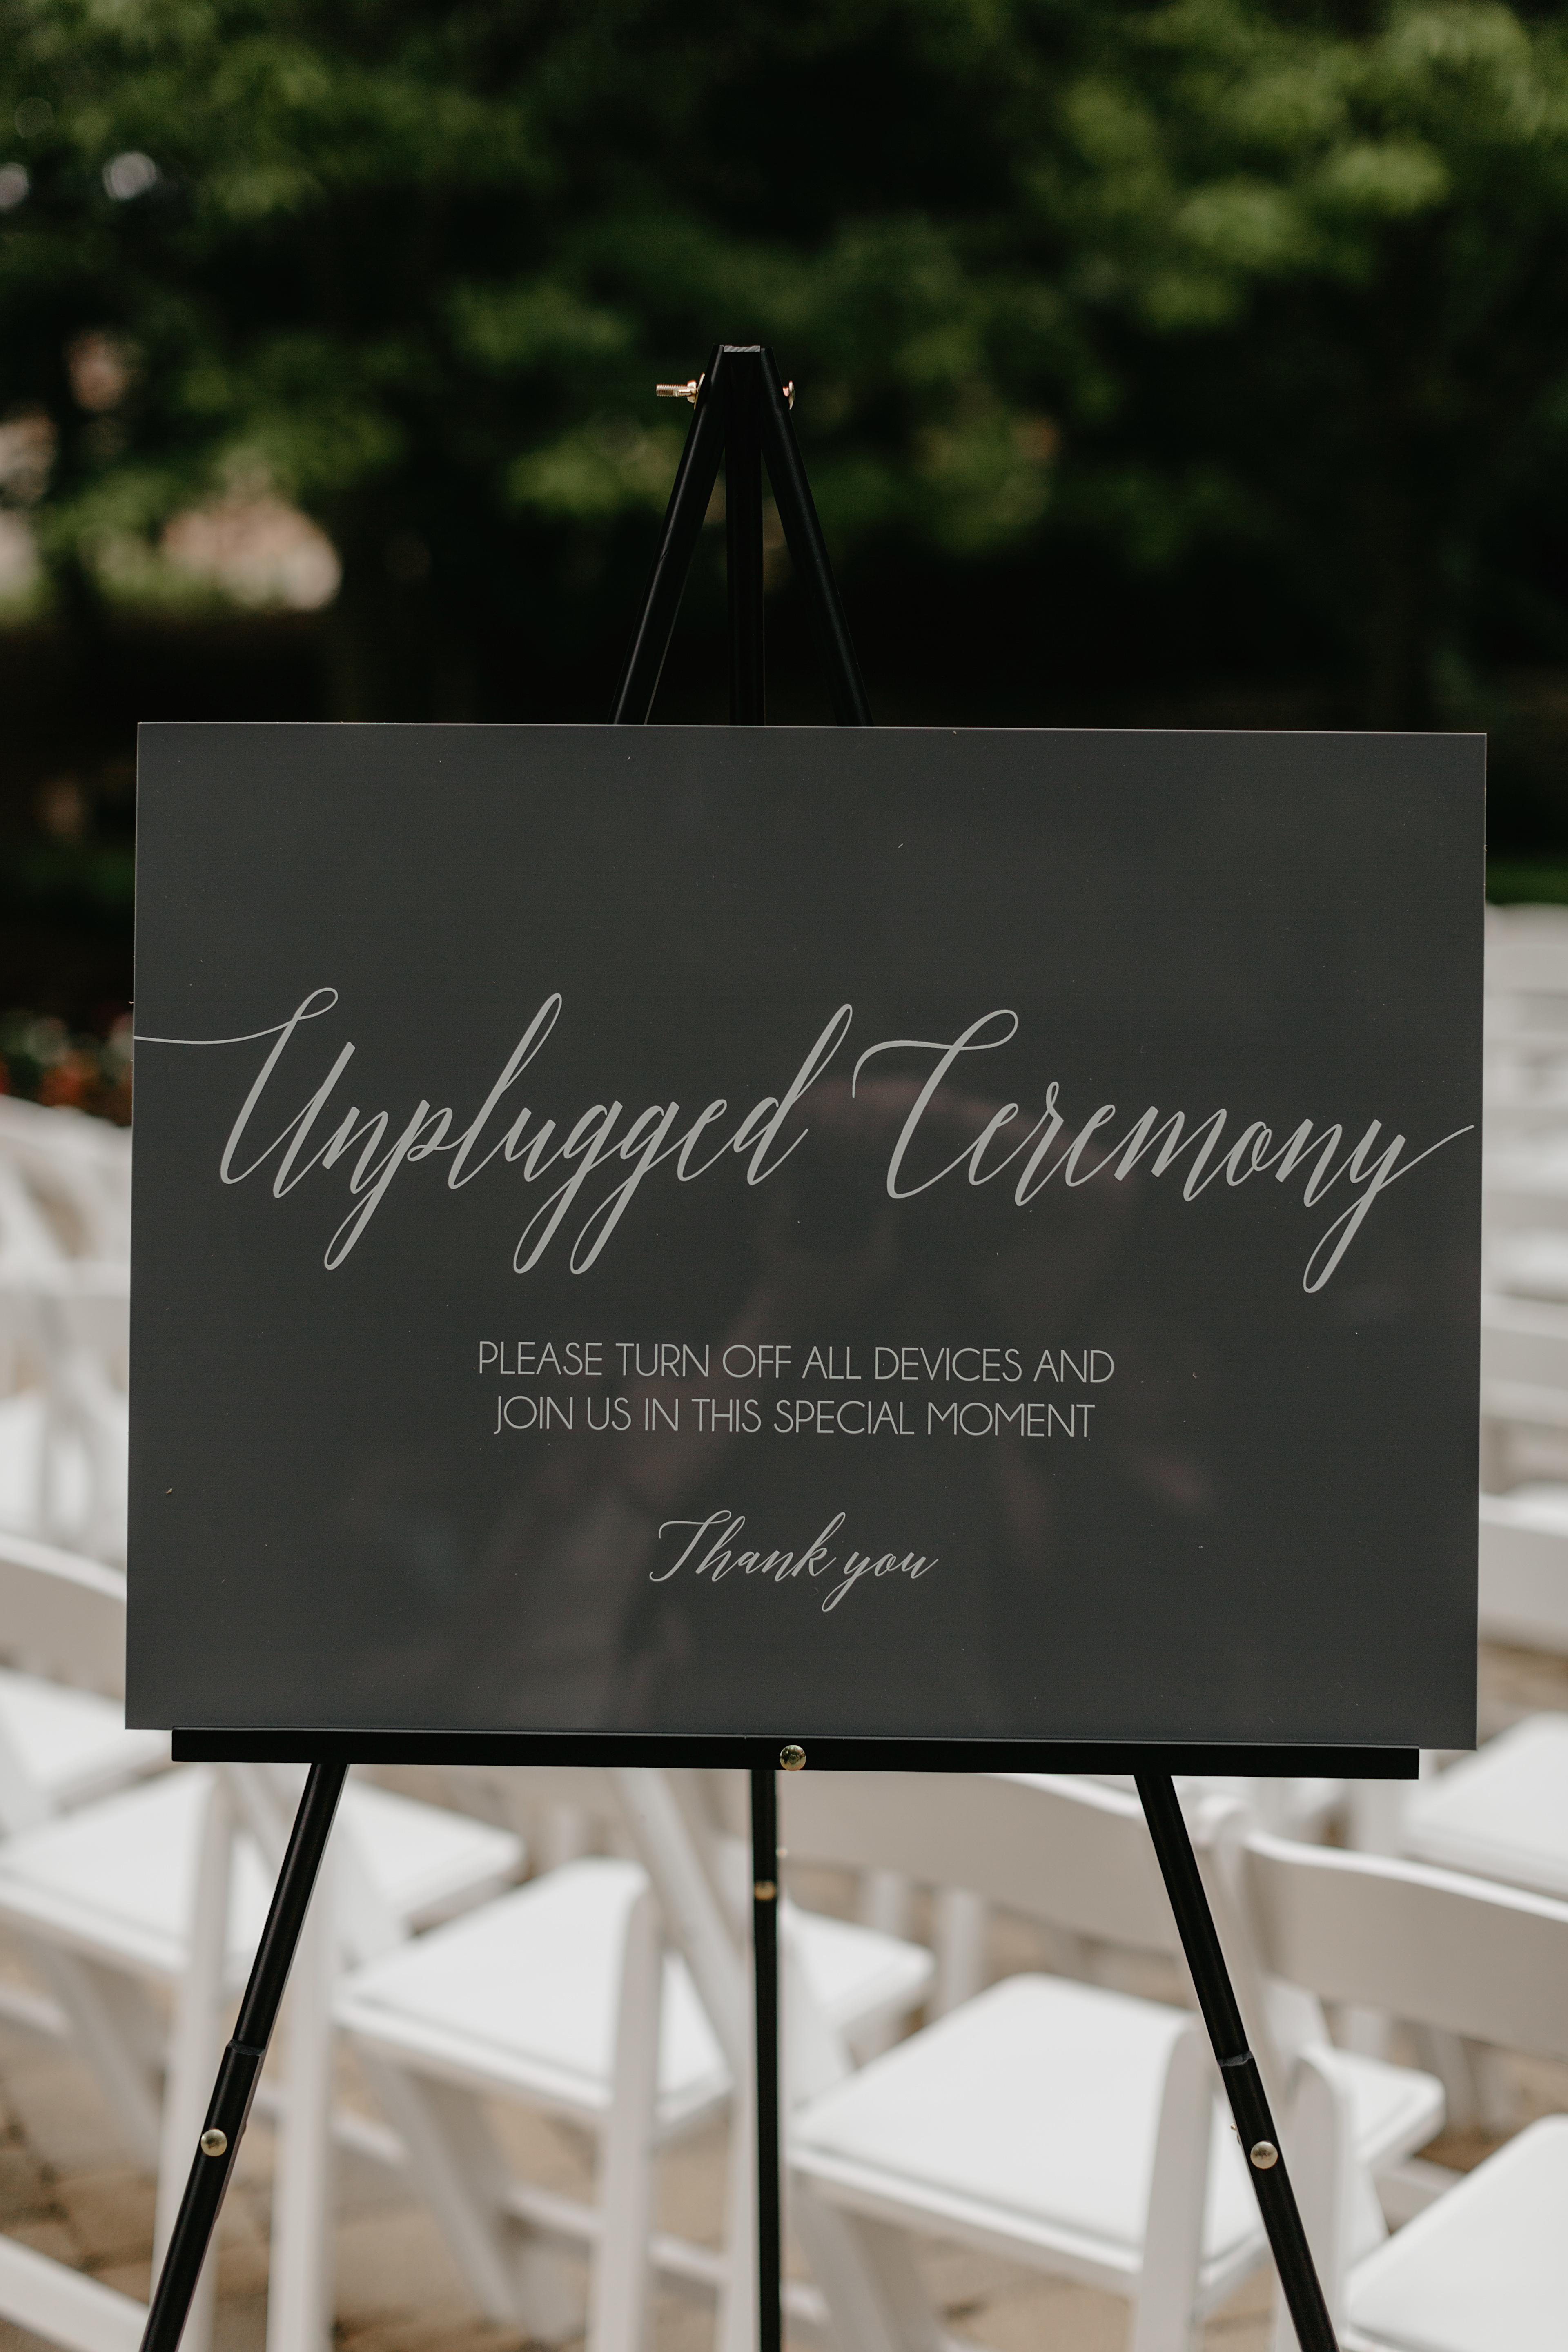 Unplugged Ceremony Combo Clear Glass Look Acrylic Wedding Sign, 18x24